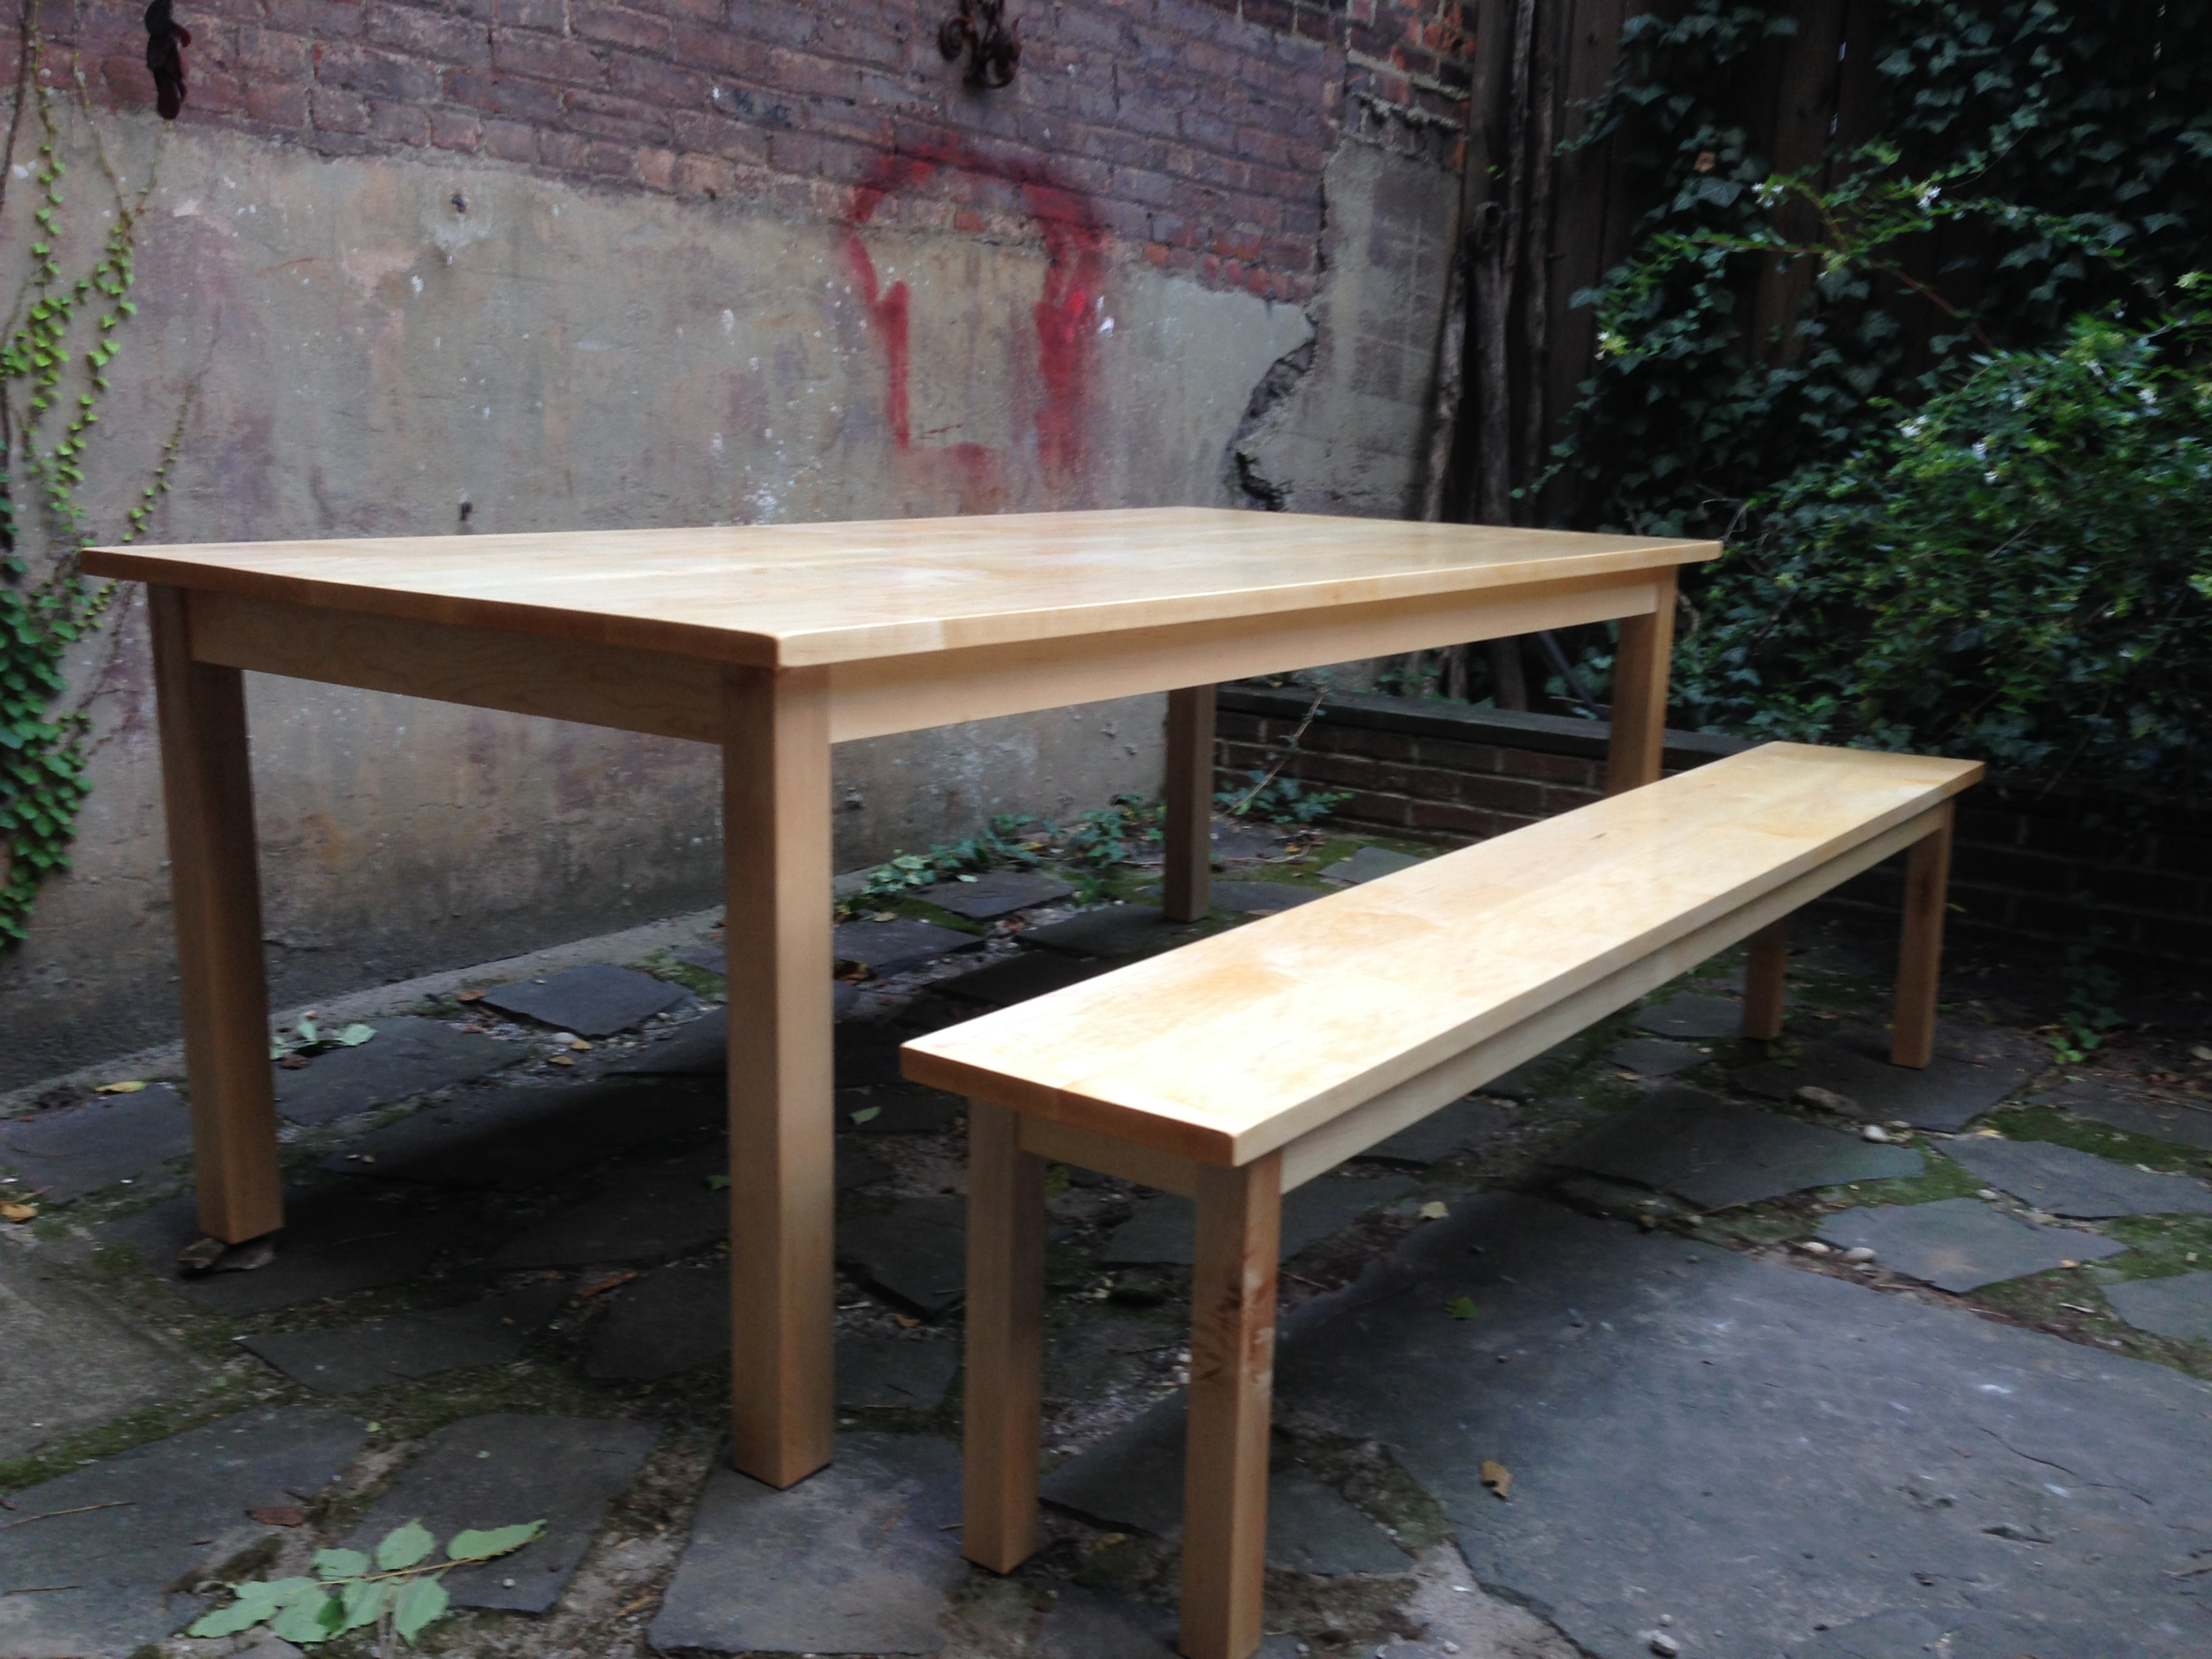 Maple Table and Bench